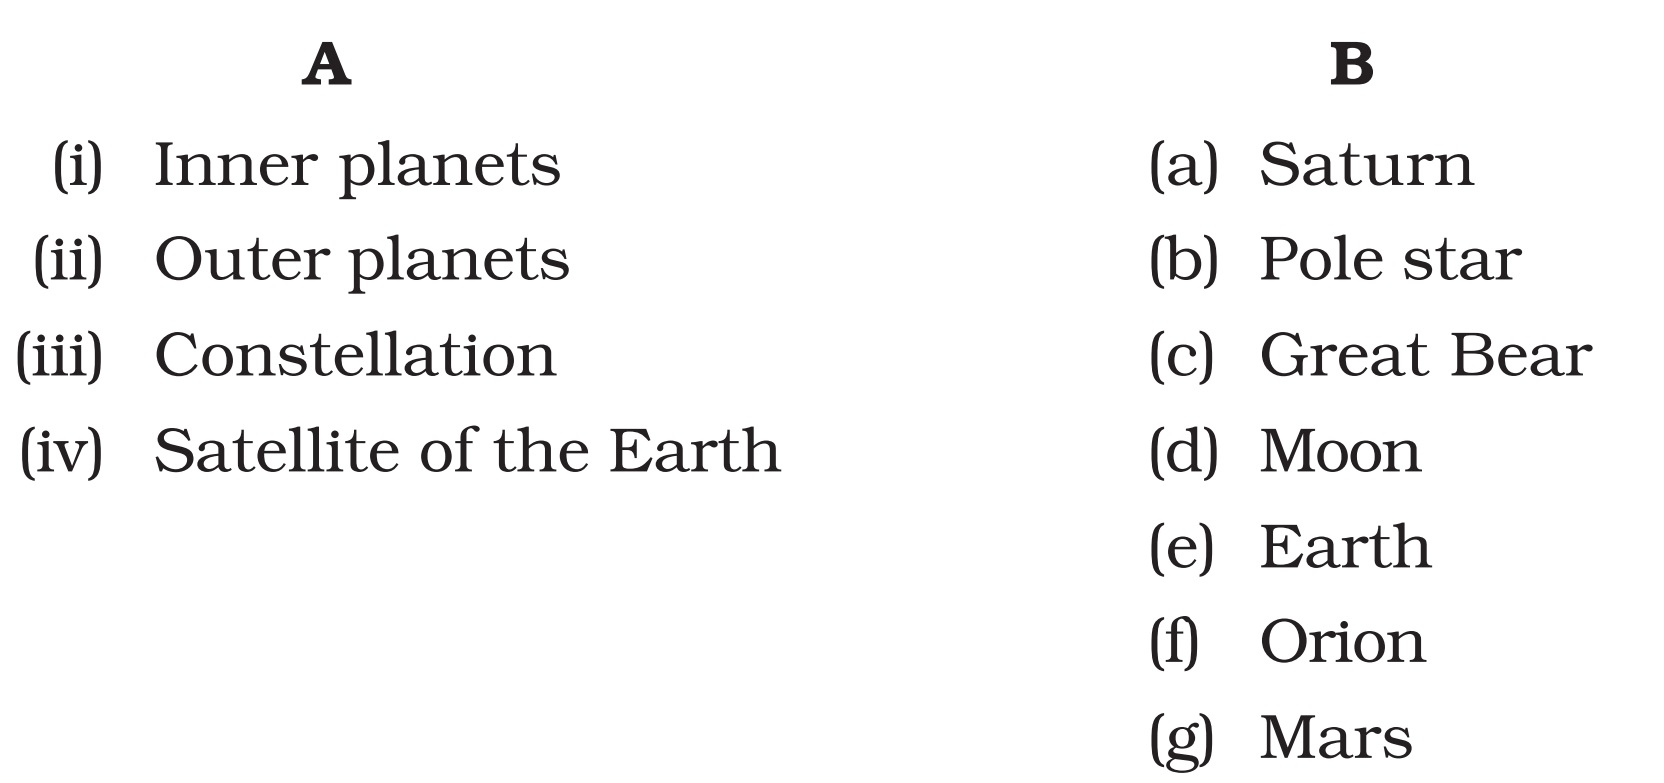 NCERT Question 6 - Chapter 17 Class 8 Science.jpg